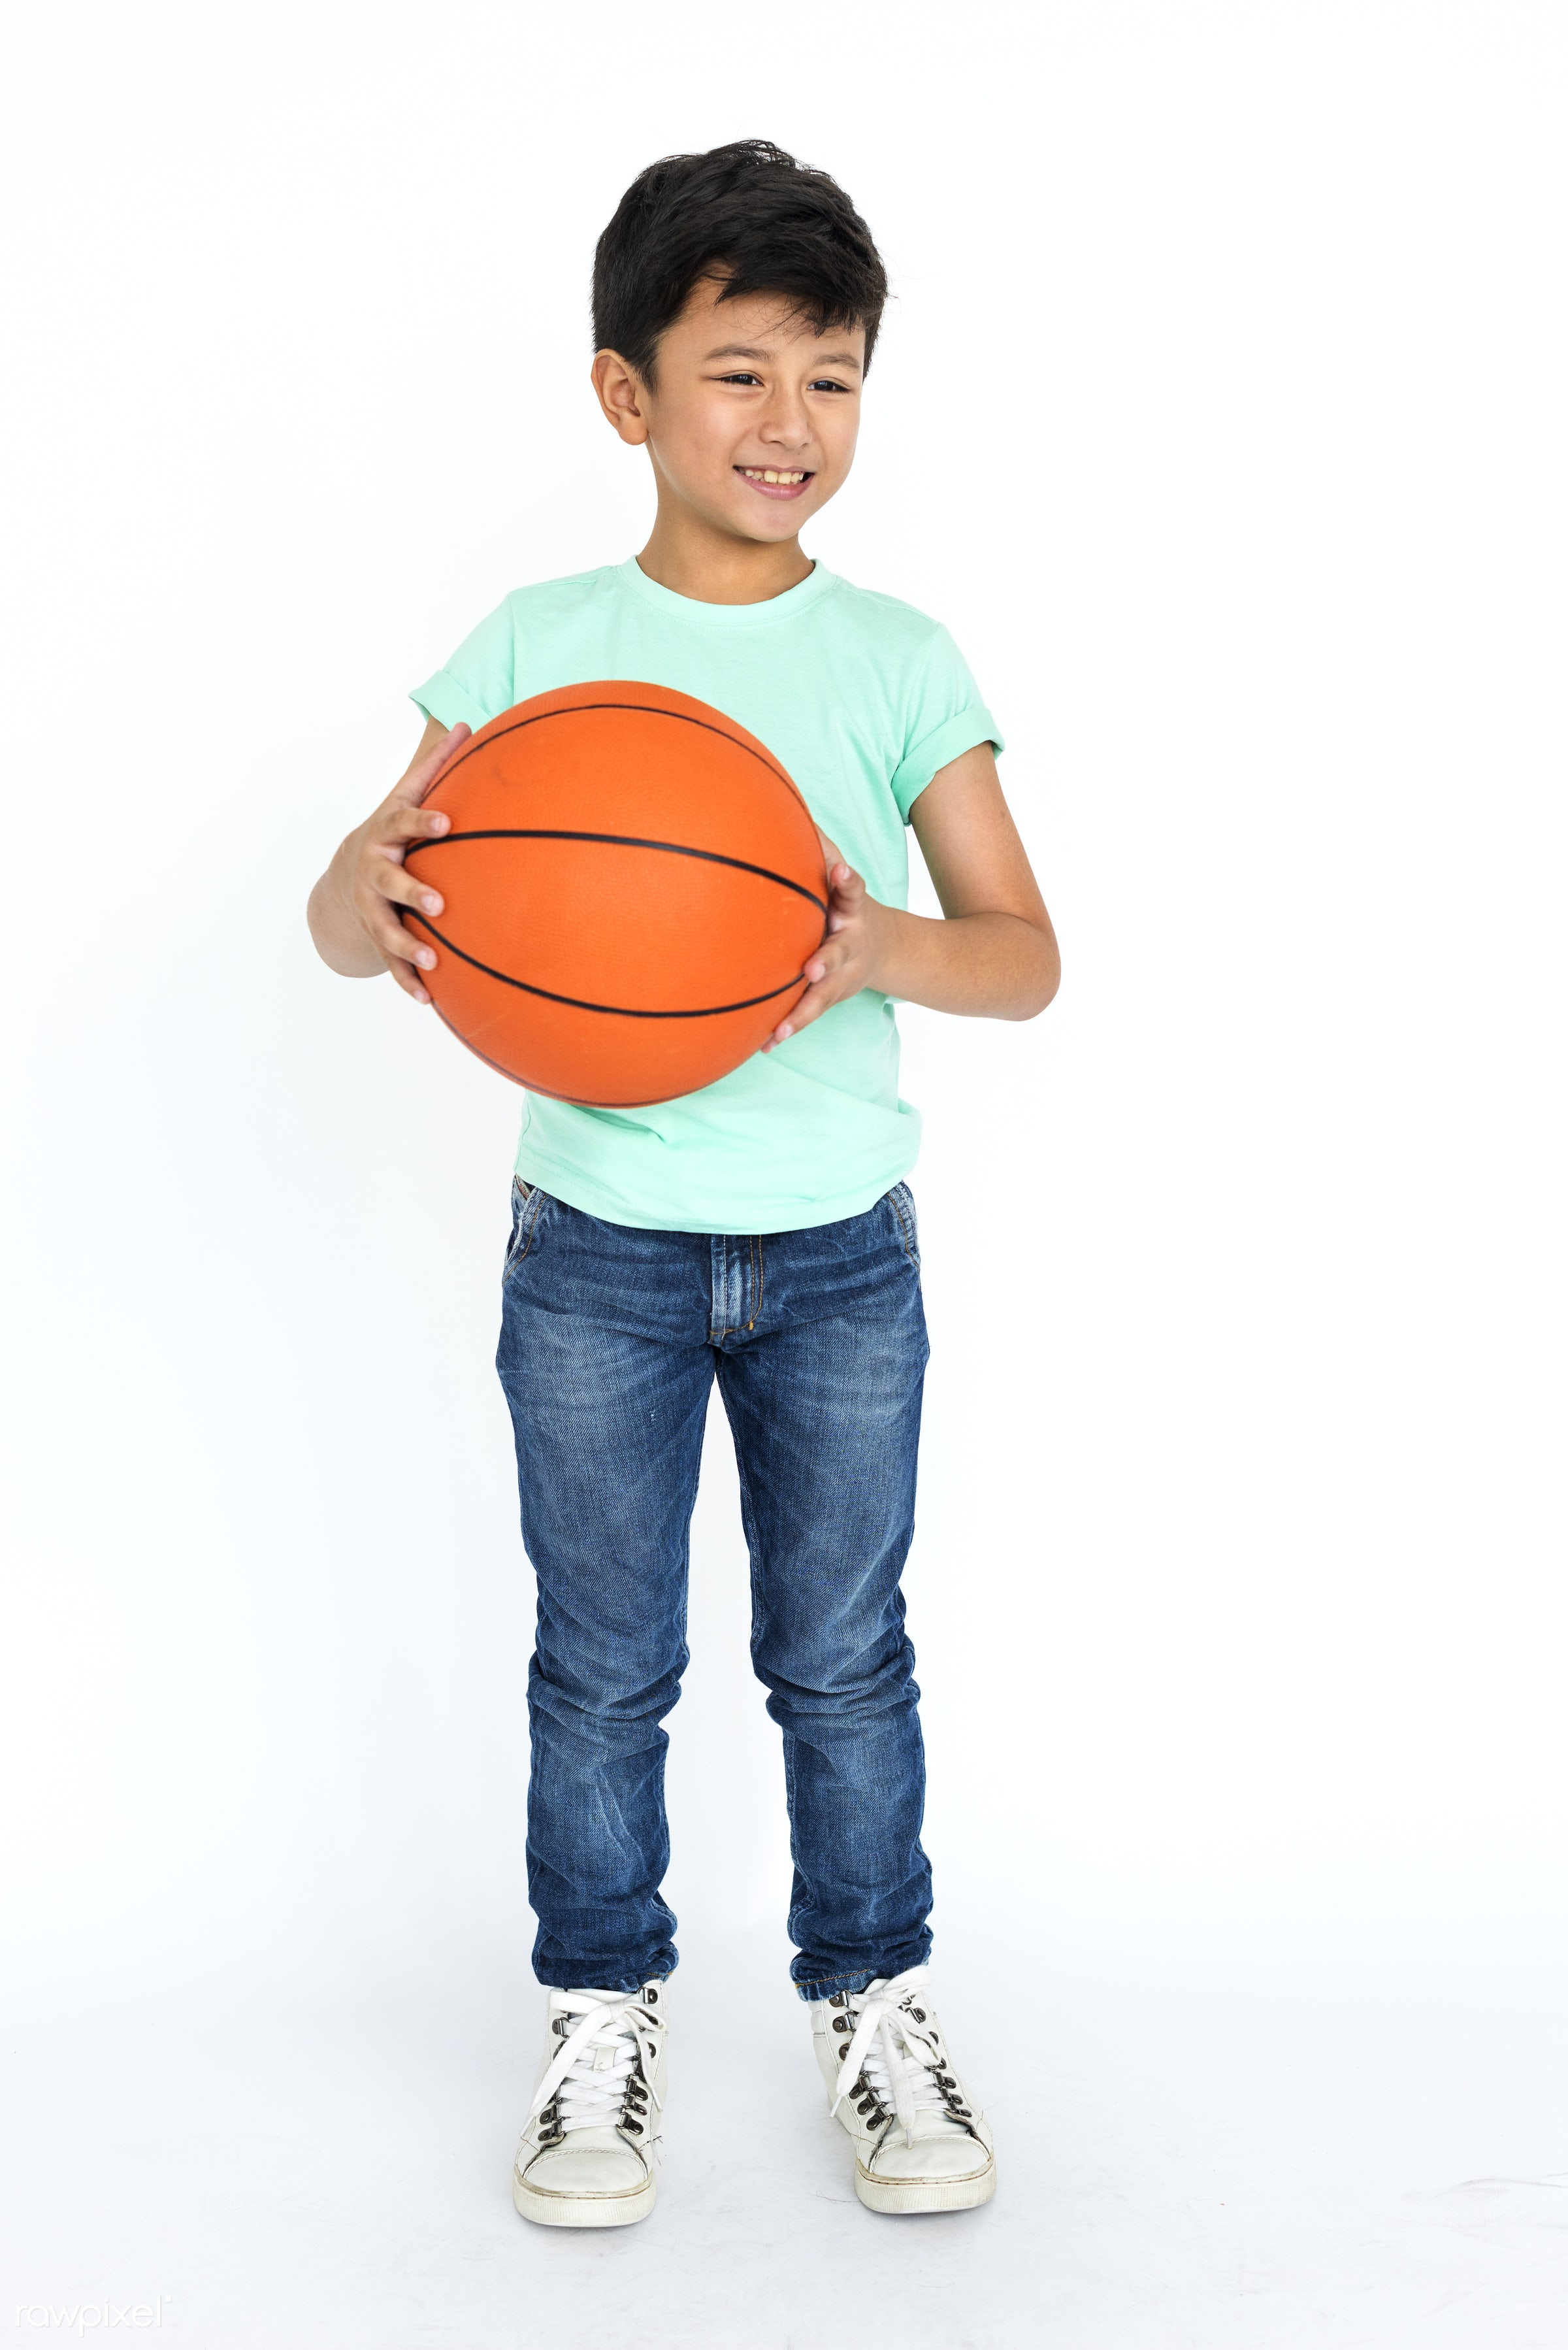 studio, basketball, expression, person, people, asian, kid, student, relaxed, teenager, smile, cheerful, smiling, isolated,...